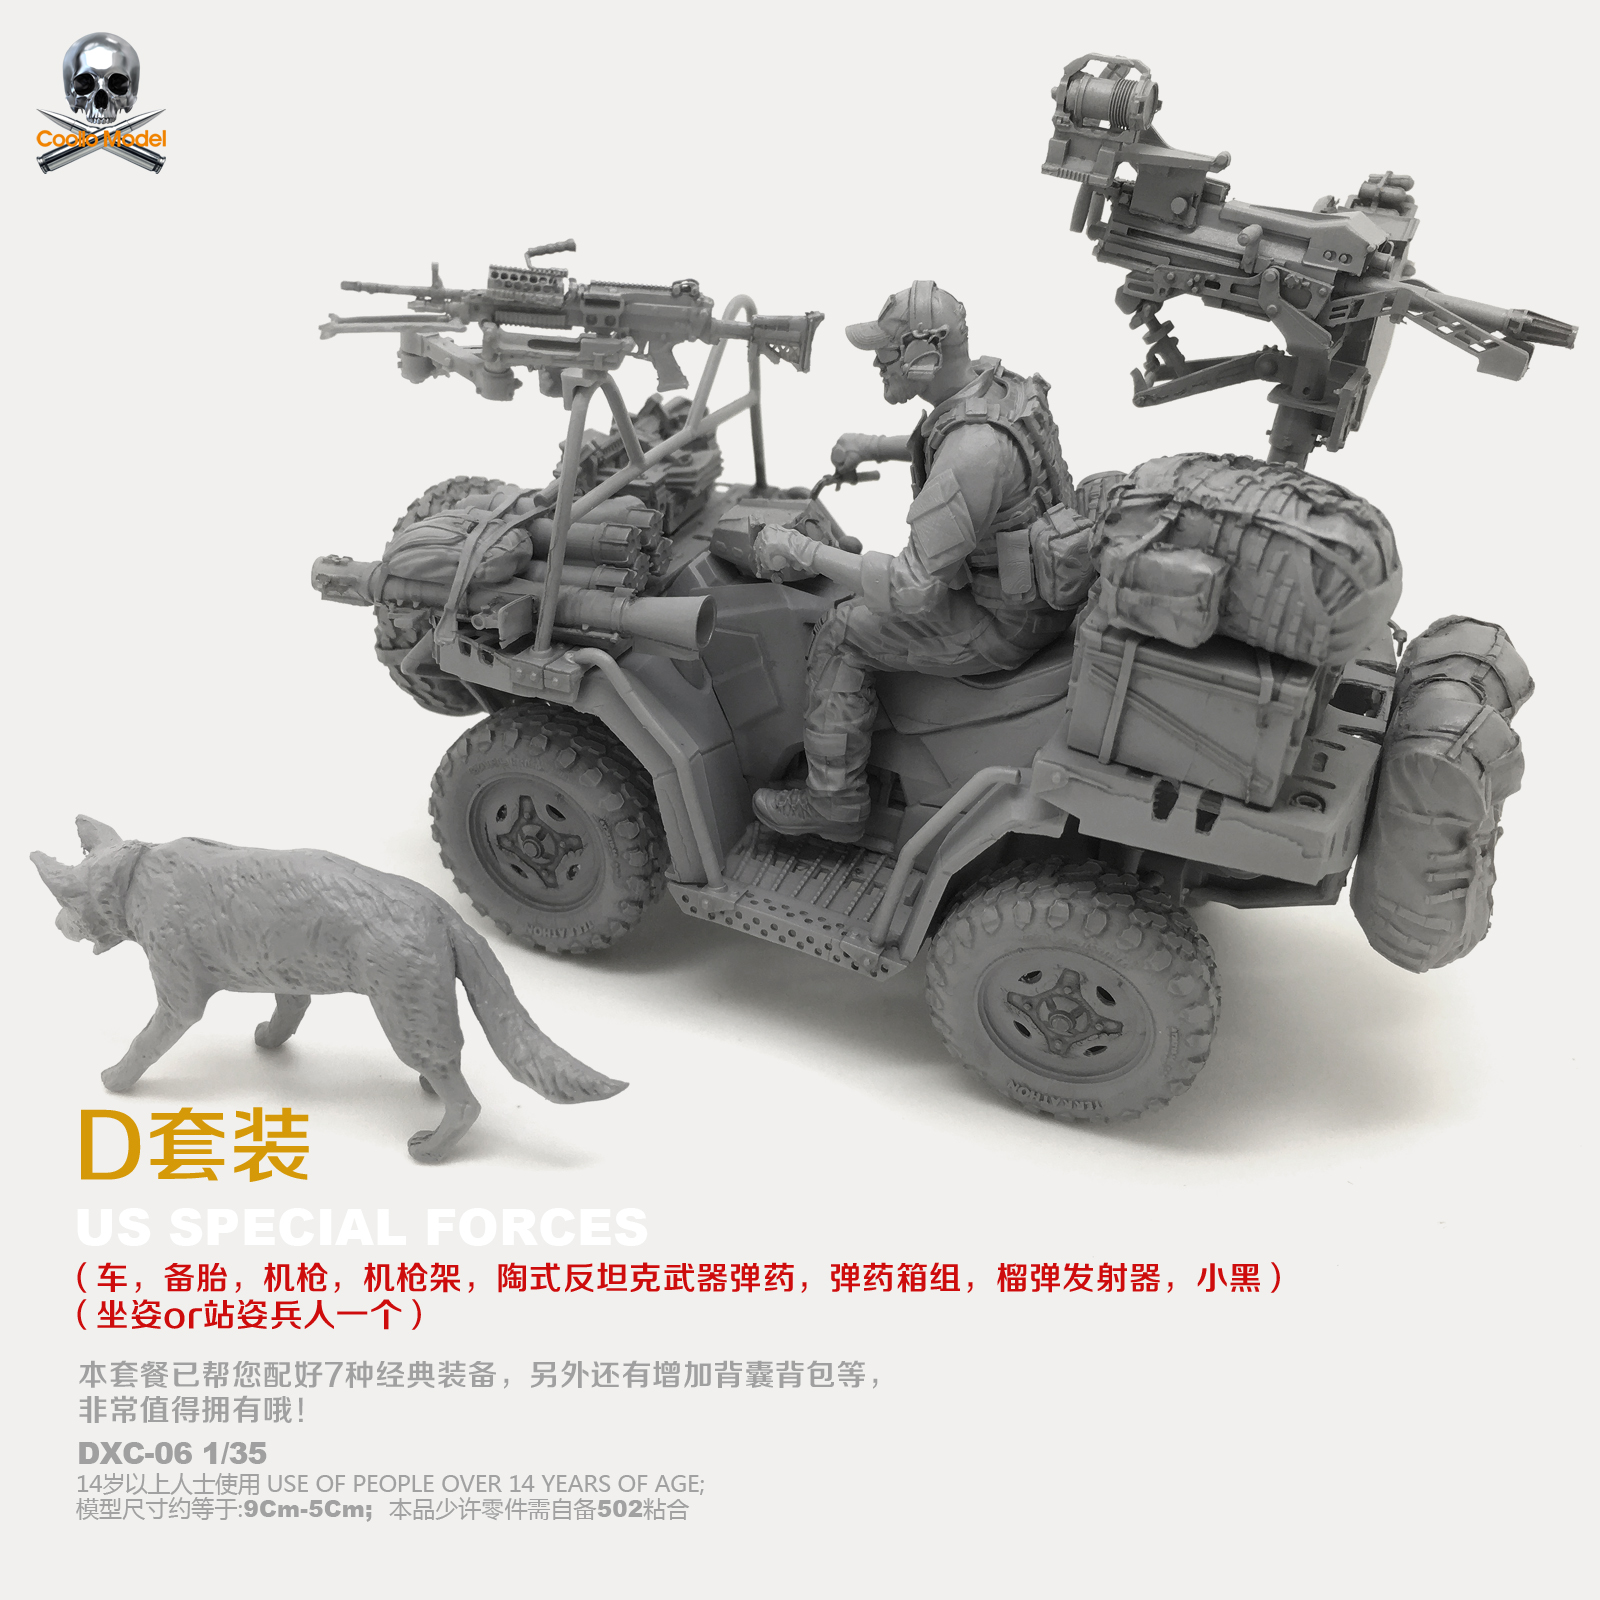 1 35 resin model kits US navy seals soldiers and ATV car terrain vehicles one set